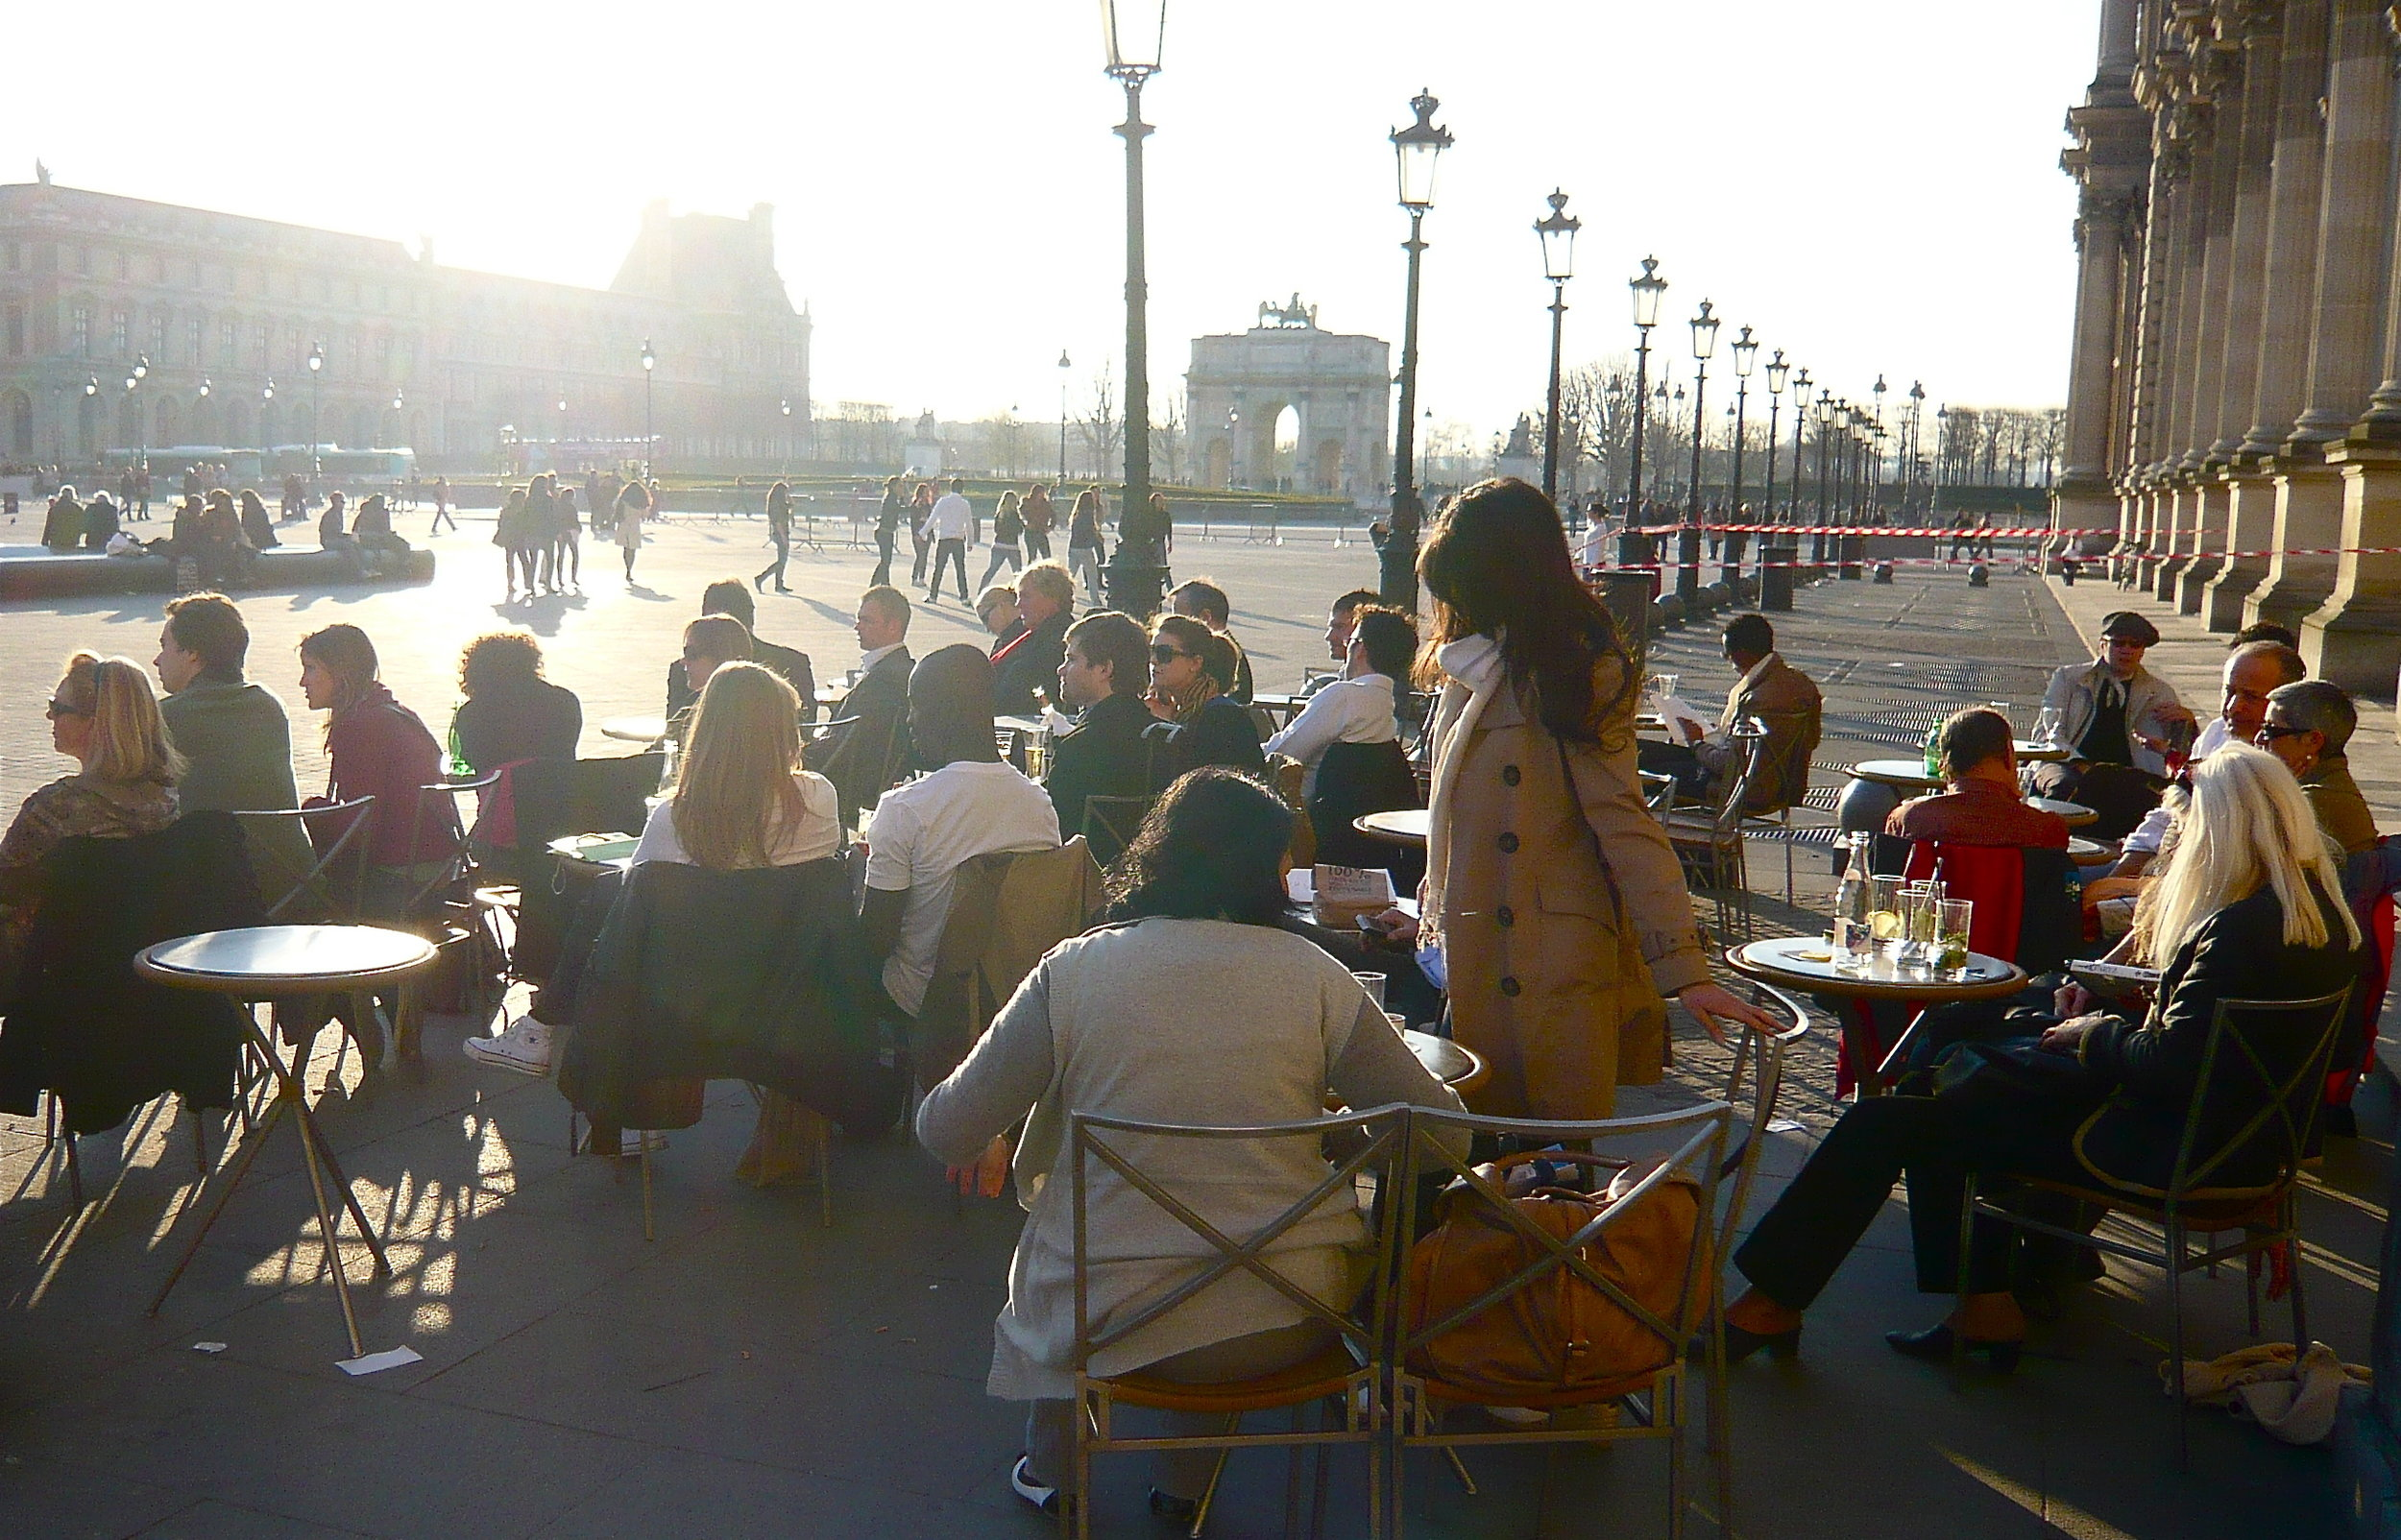 Cafe Marly at the Louvre by  Herry Lawford on flickr  by  Creative Commons license .